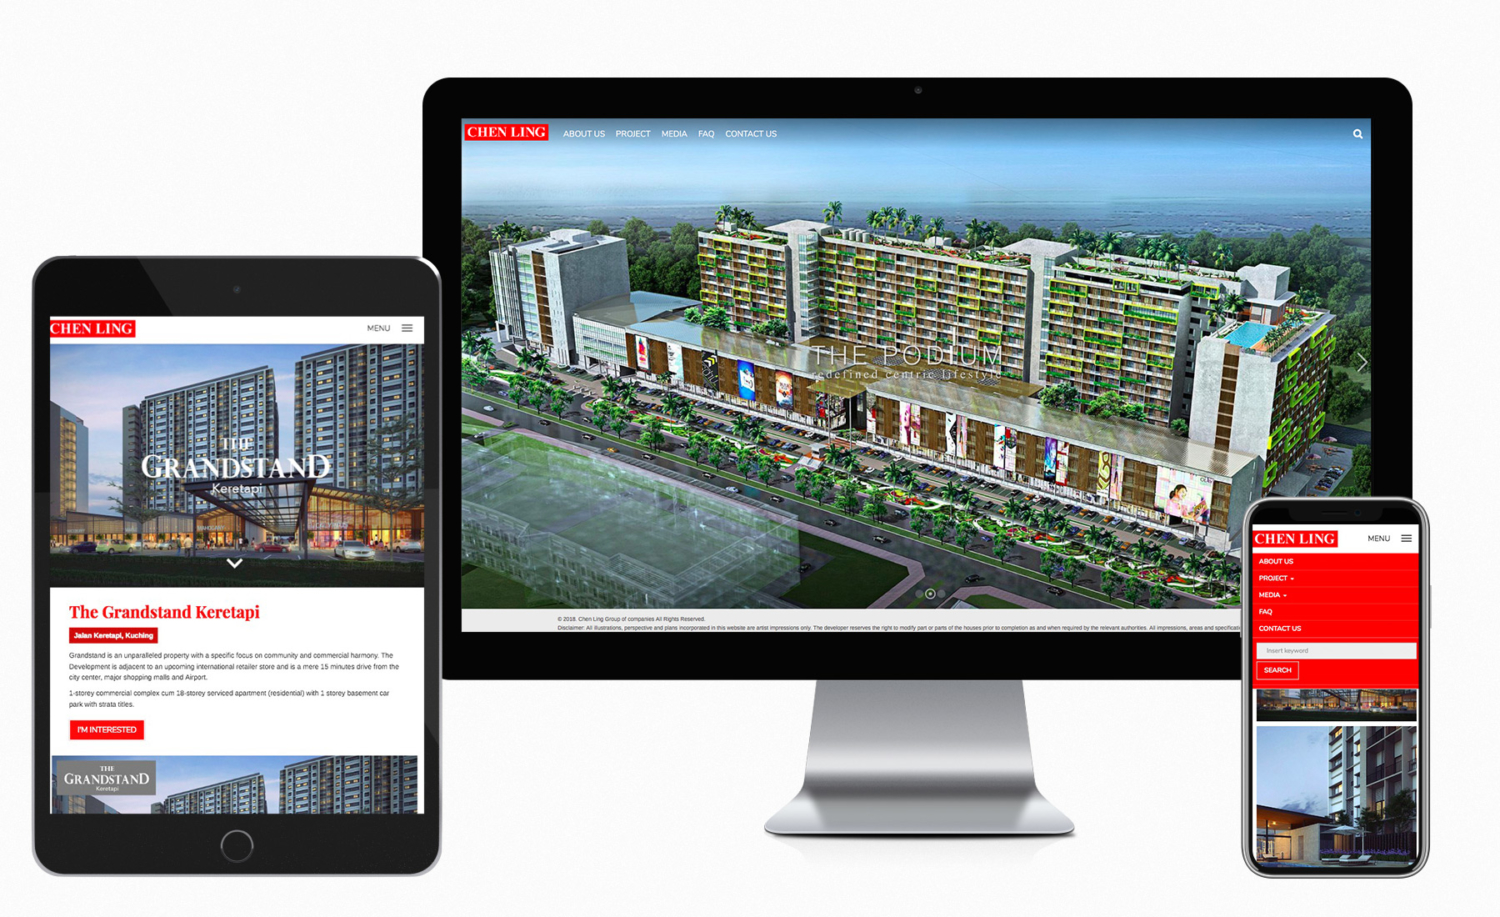 Chen Ling Group of Companies Website Design and Built